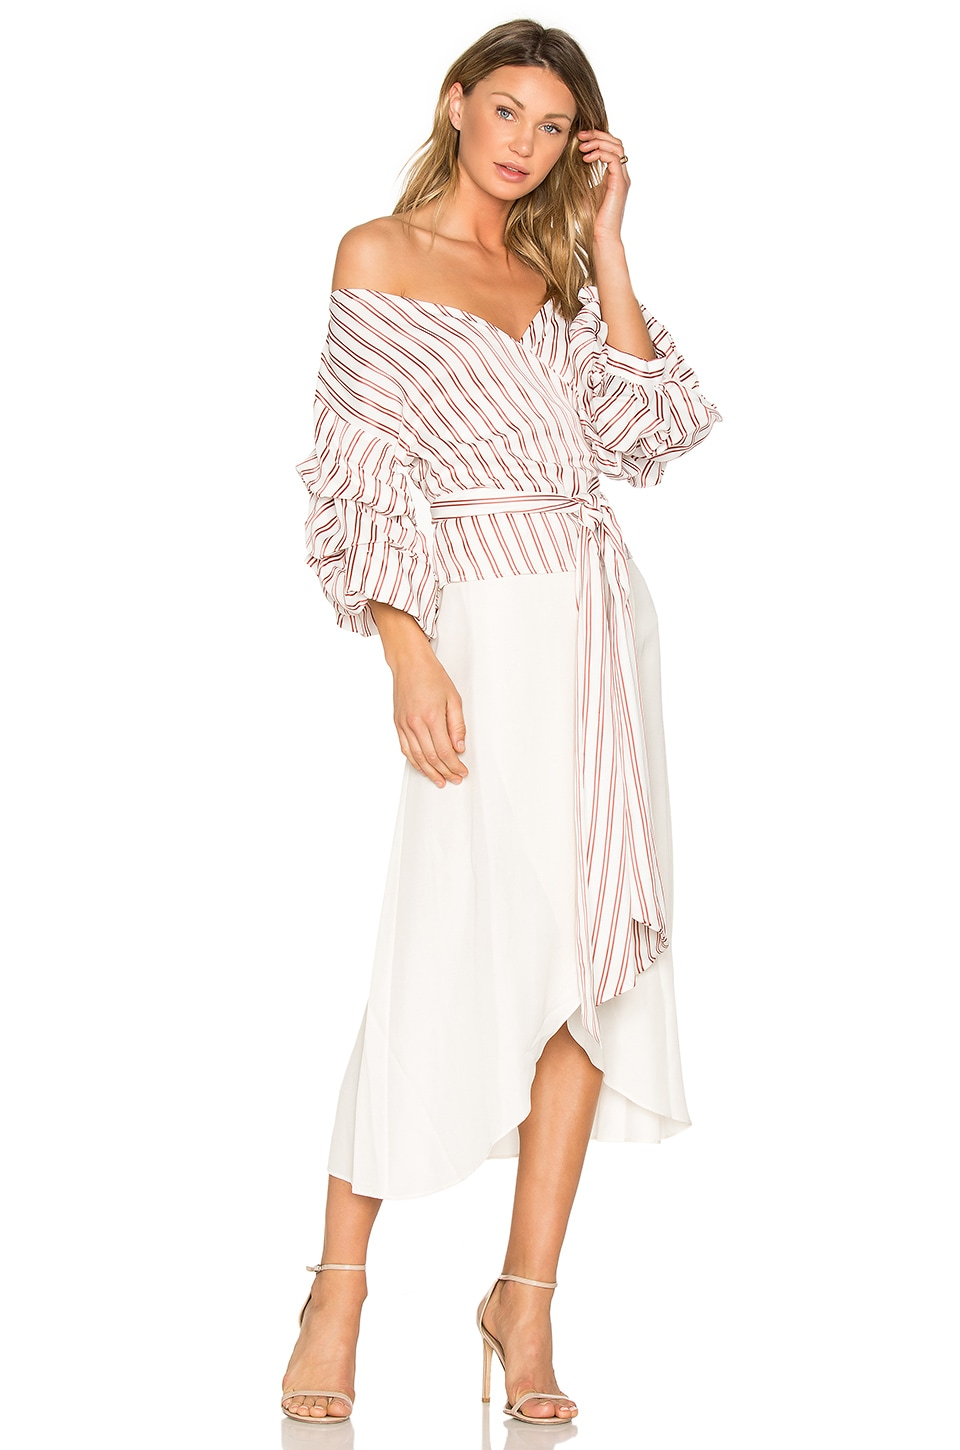 Alexis Armelle Top in Stripe